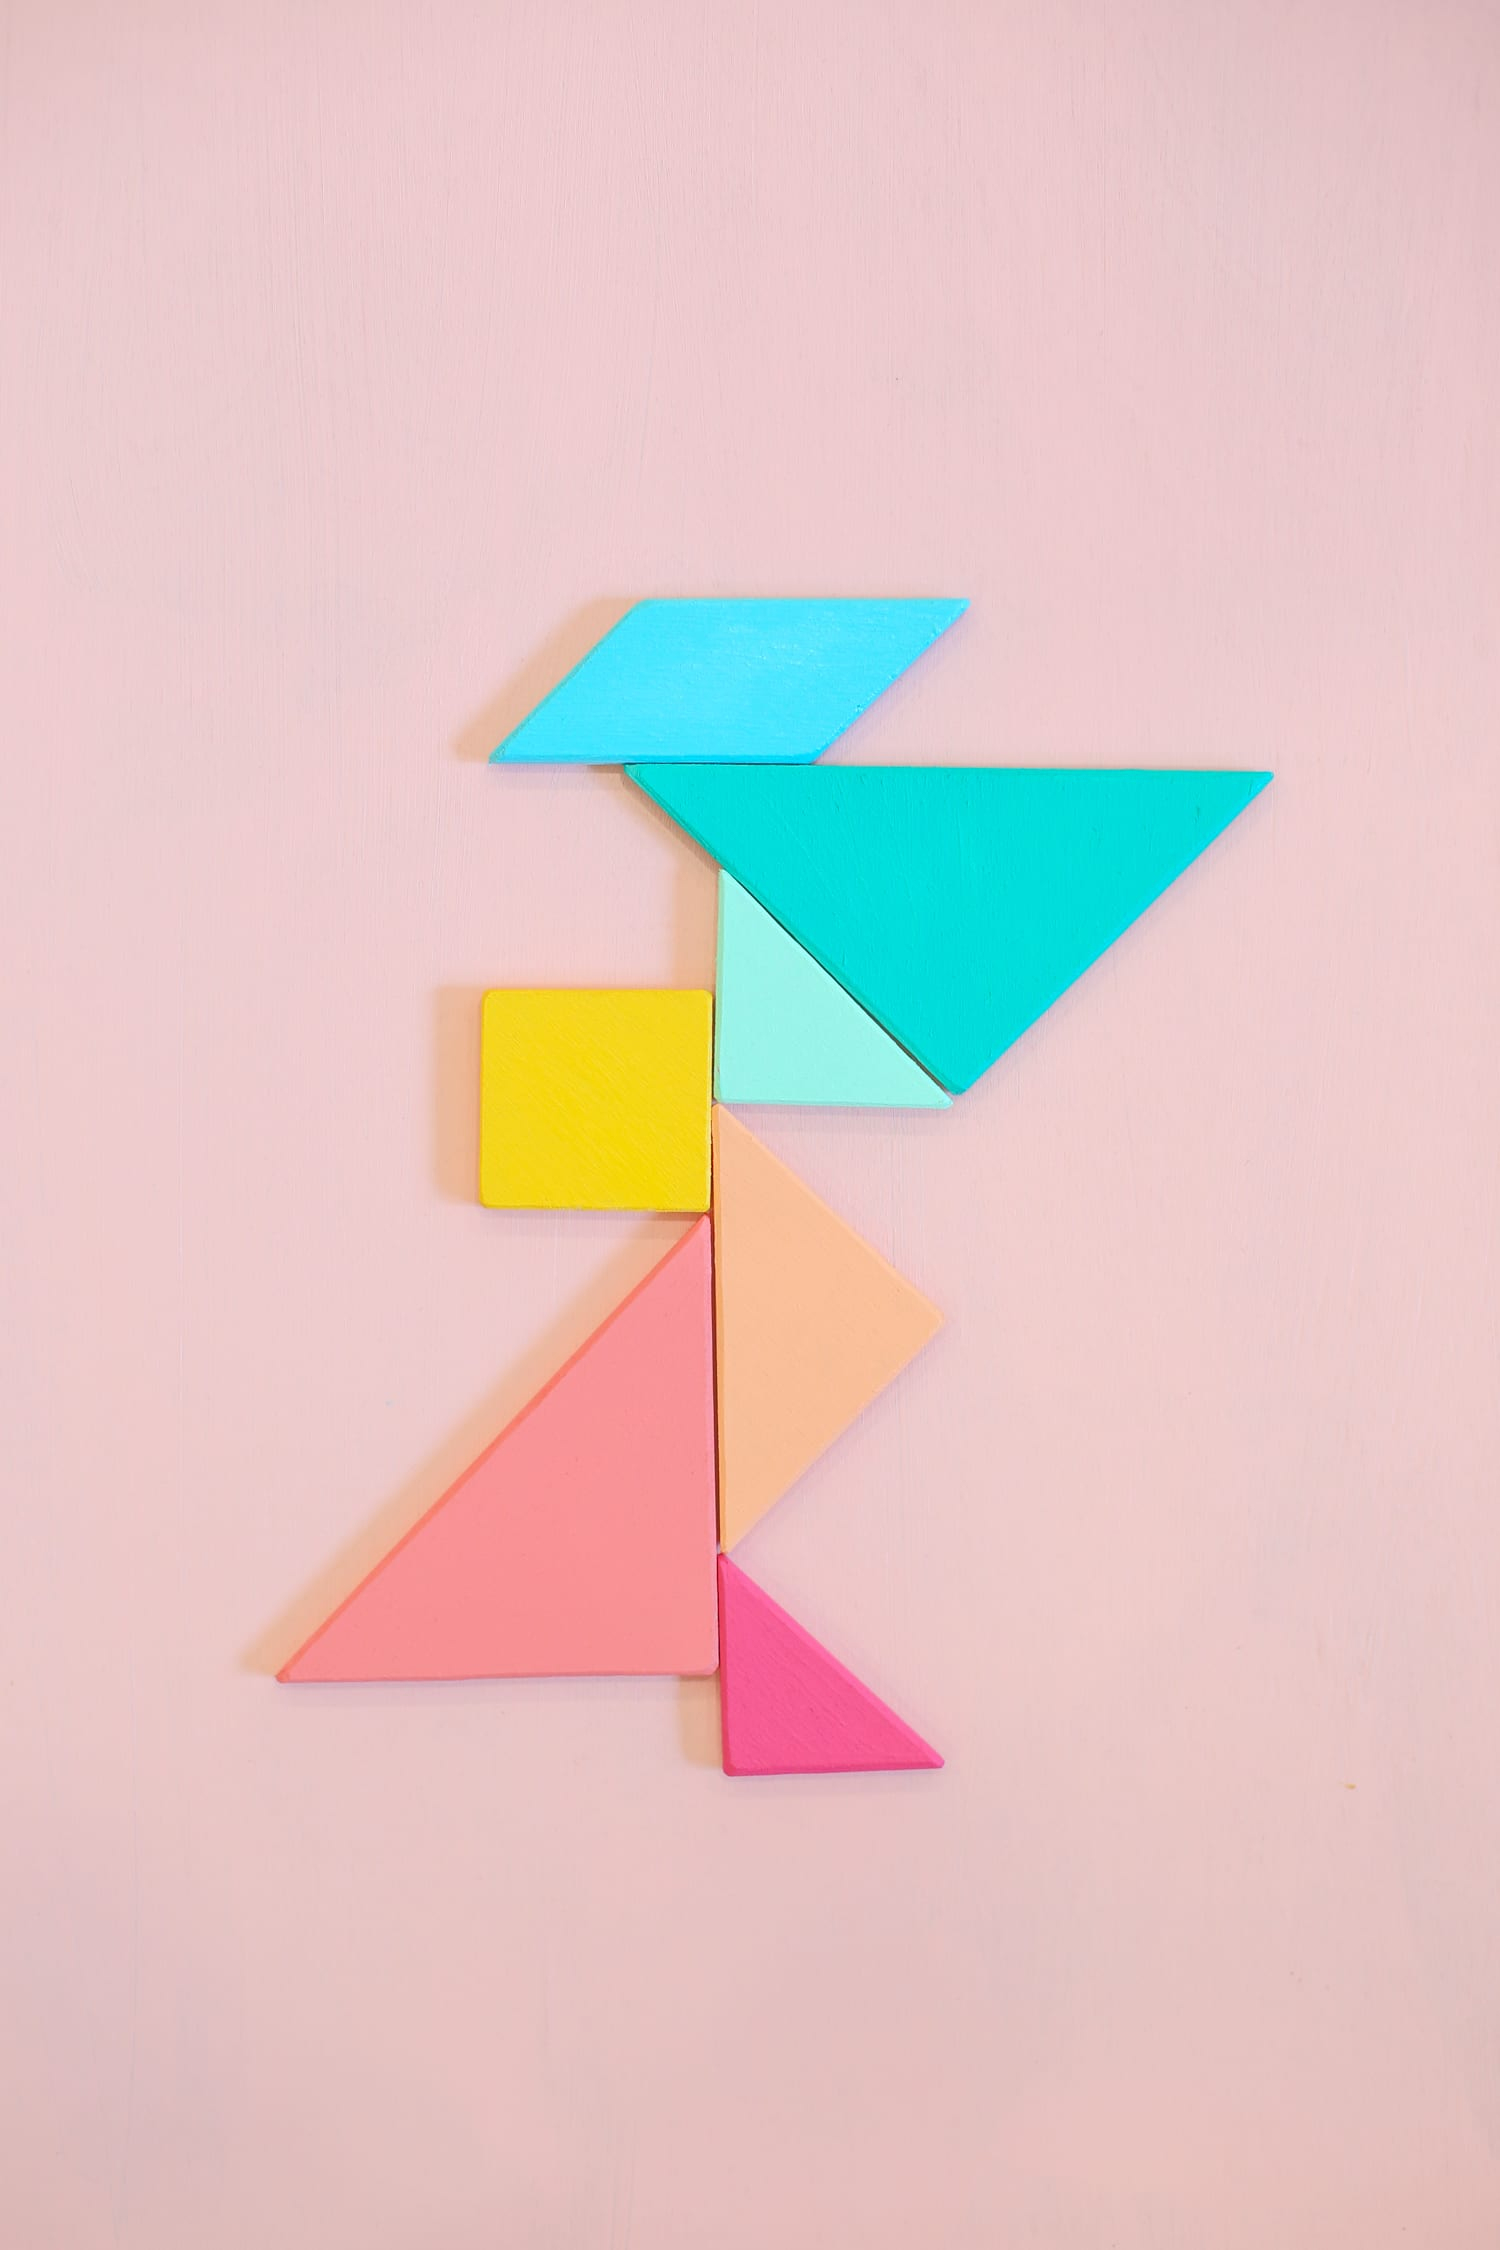 How To Make Tangrams And Tangram Shapes For Kids intérieur Tangram Simple